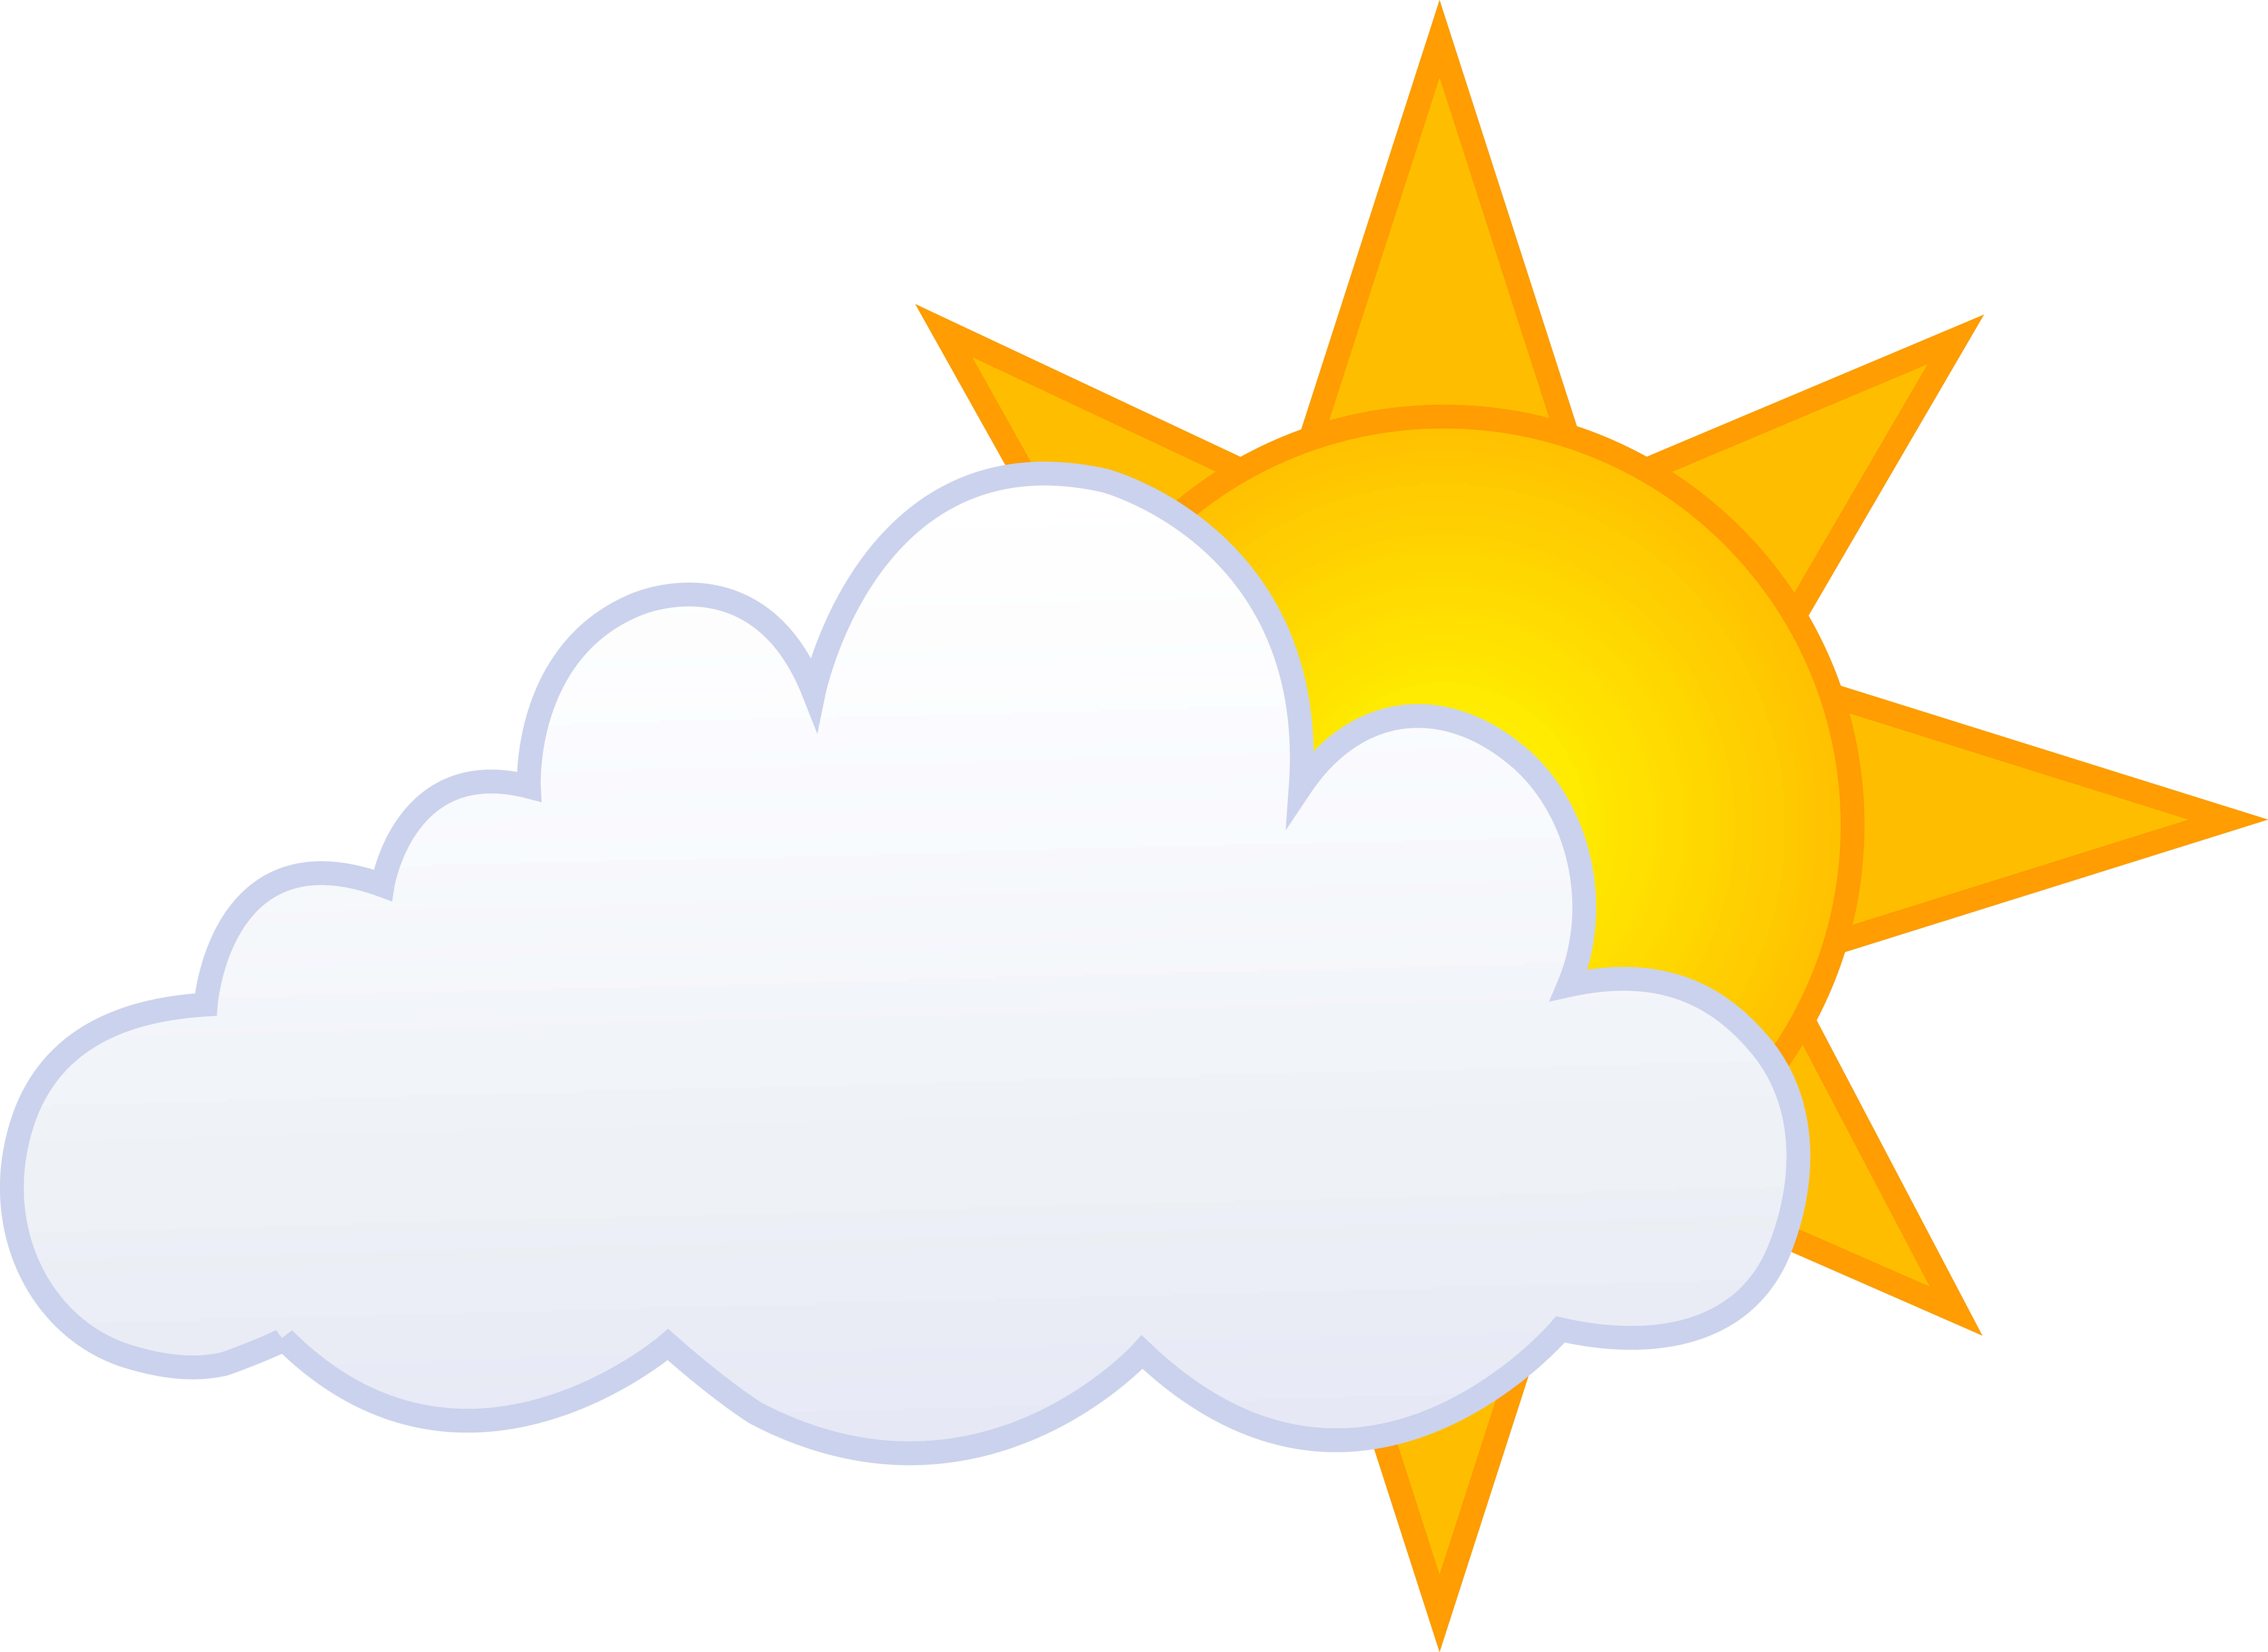 Sunny clipart blue. Sun and clouds drawing